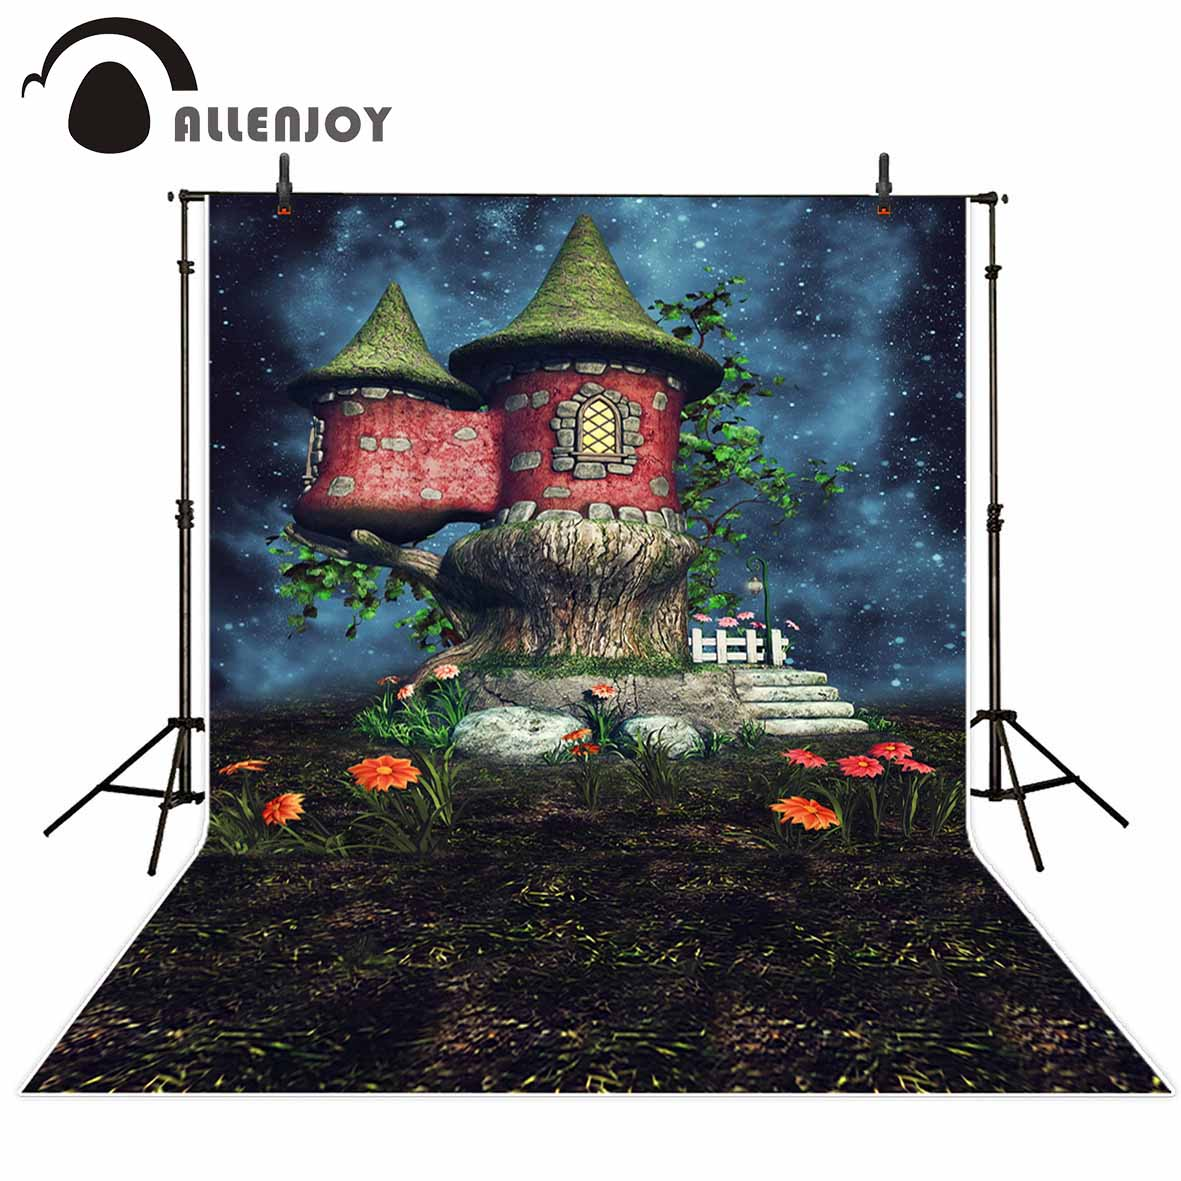 Allenjoy photography backdrops Children background fairy tale house flowers starry sky Background for photo studio fond